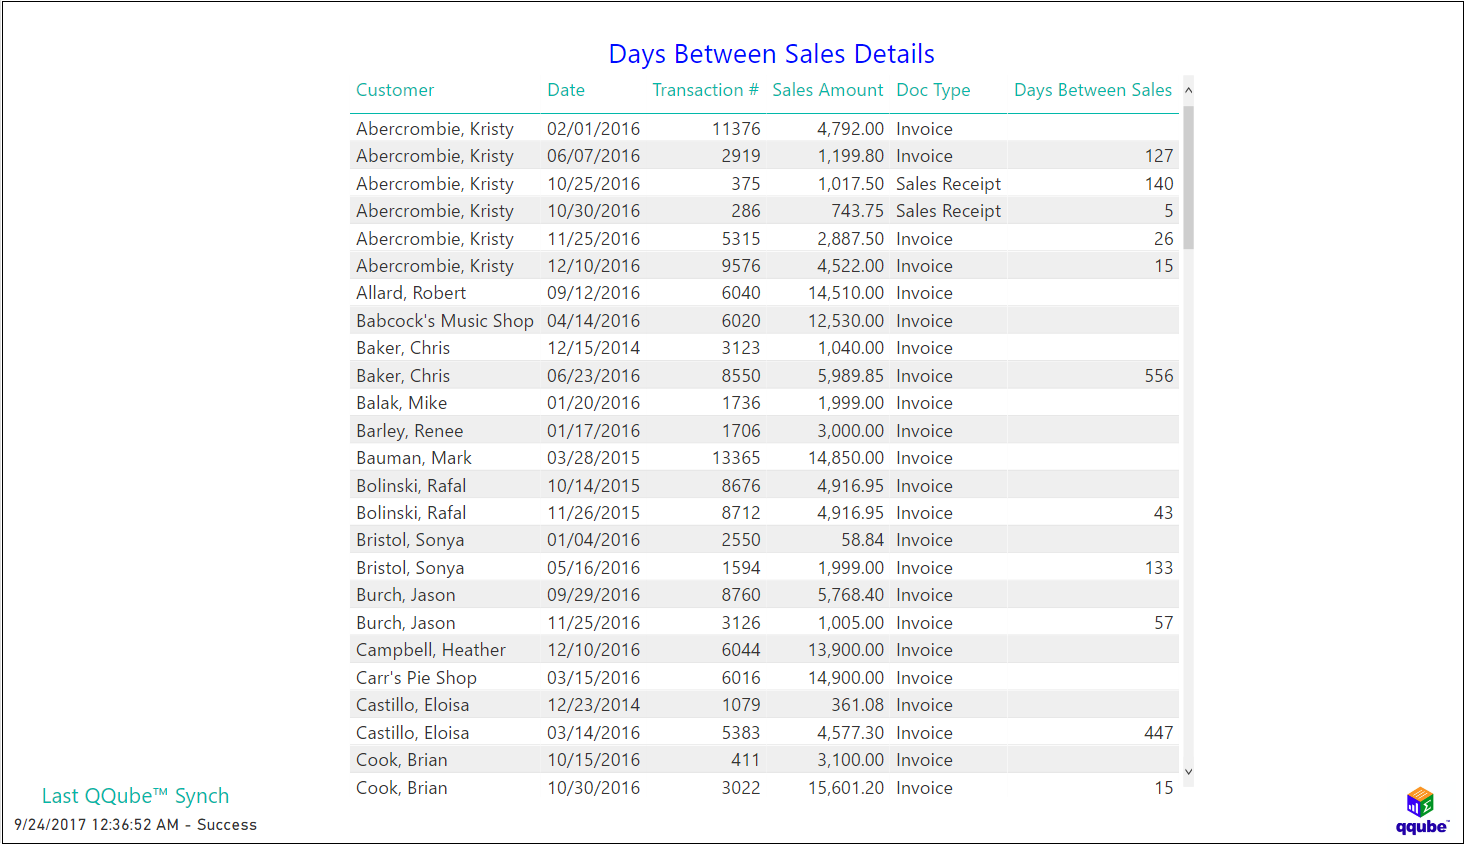 QQube and Power BI - Days Between Sales Details